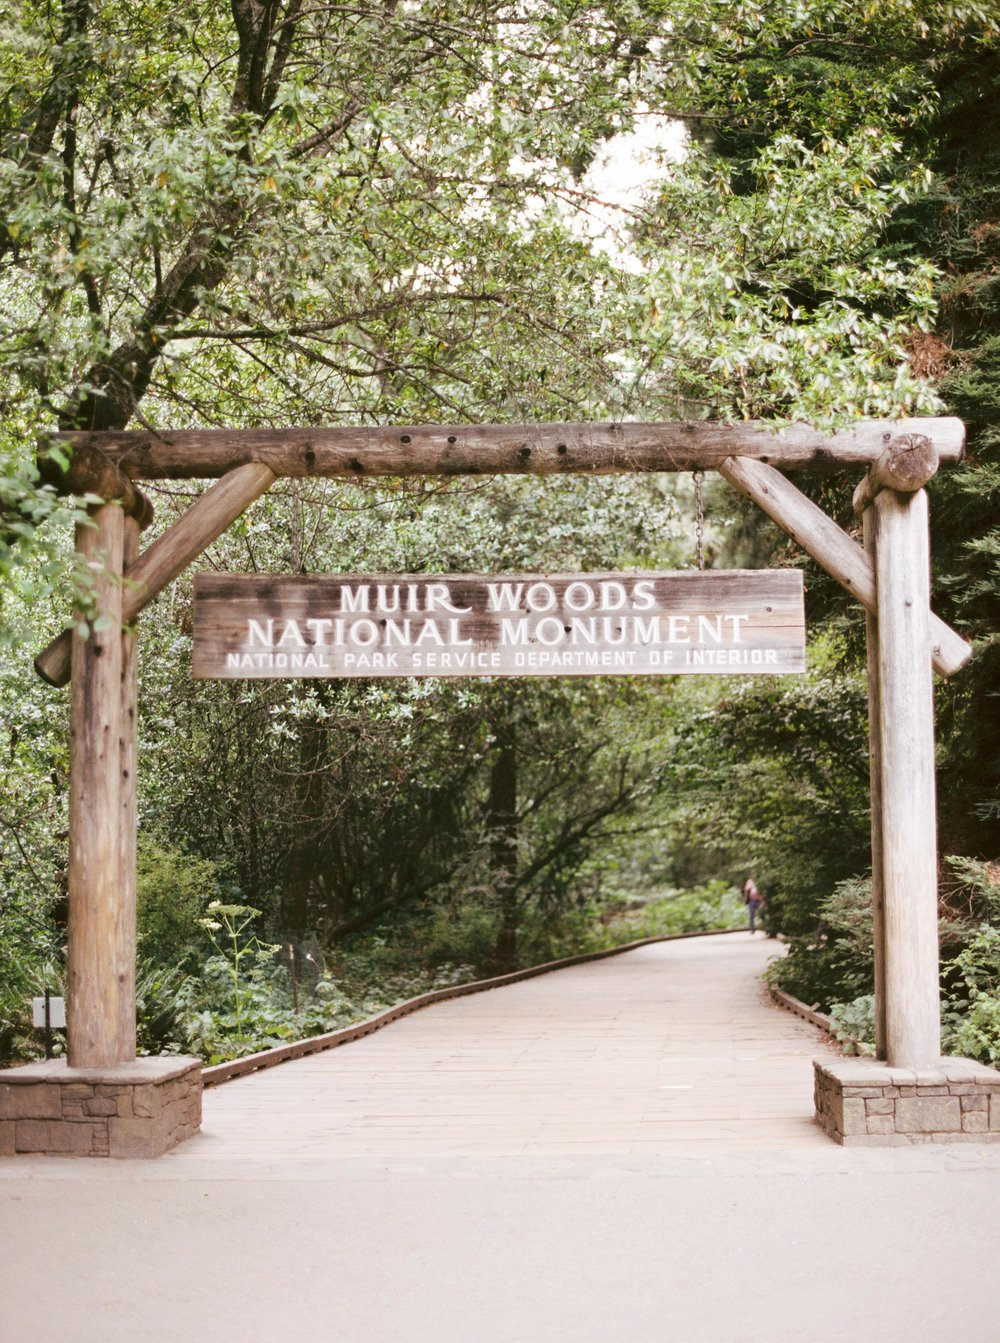 001_Krysten-Crebin-Muir-Woods-Elopement-Wedding-Photographer.jpg